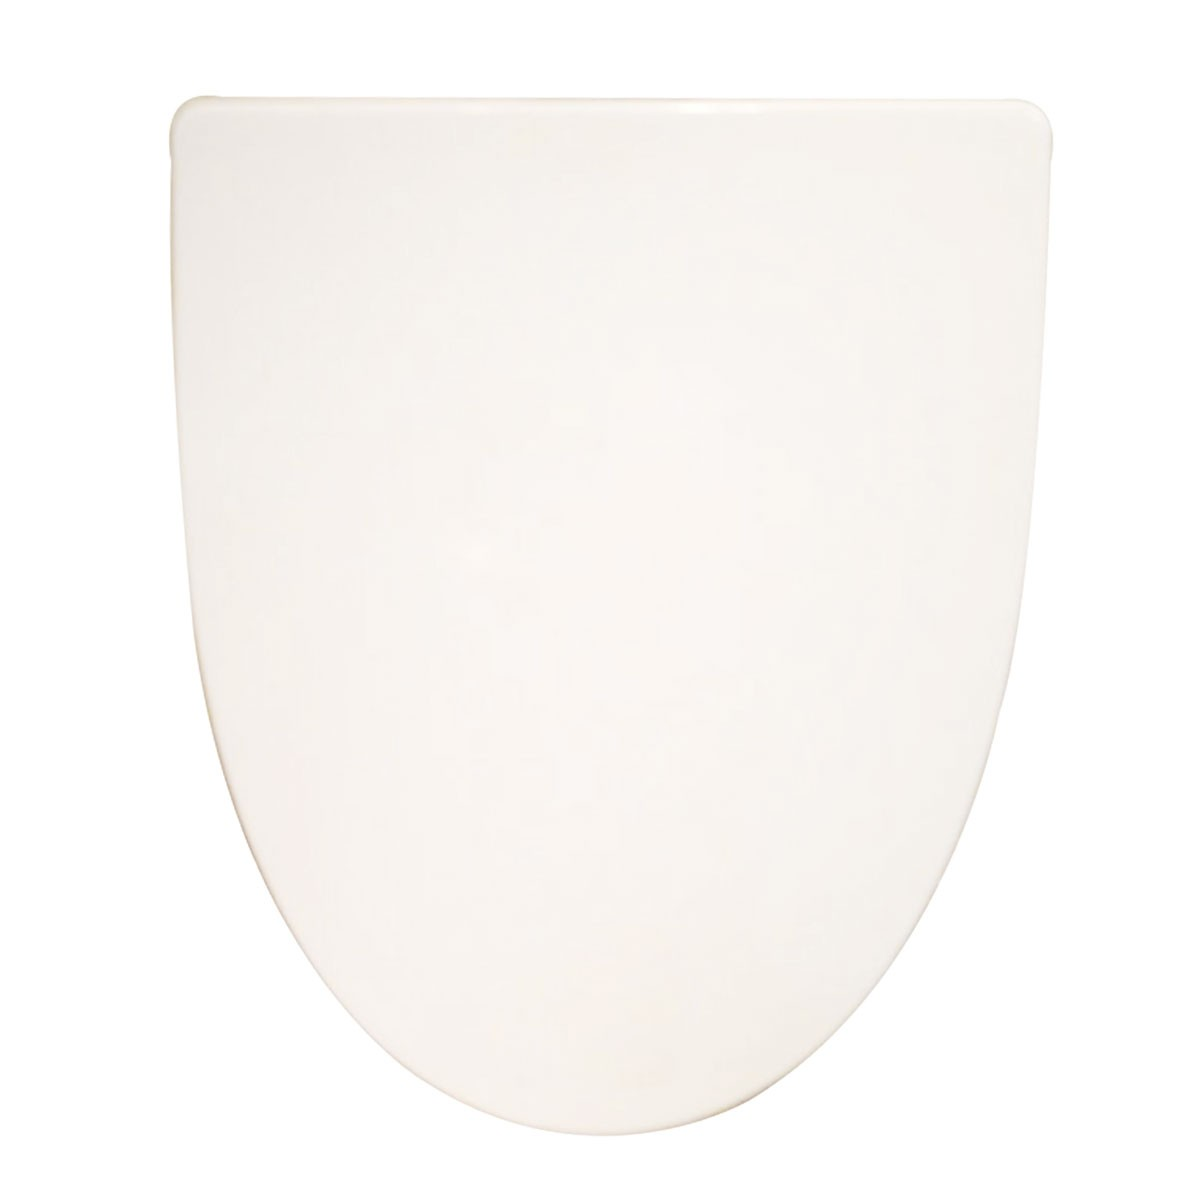 White Soft Close Toilet Seat with Cover (DK-CL-117)